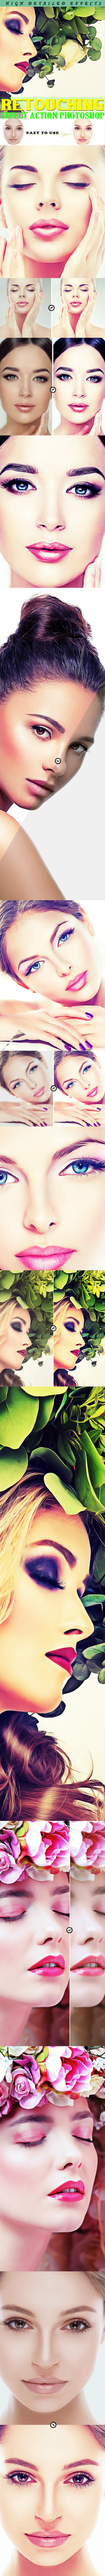 GraphicRiver Smart Retouching Action 20377455